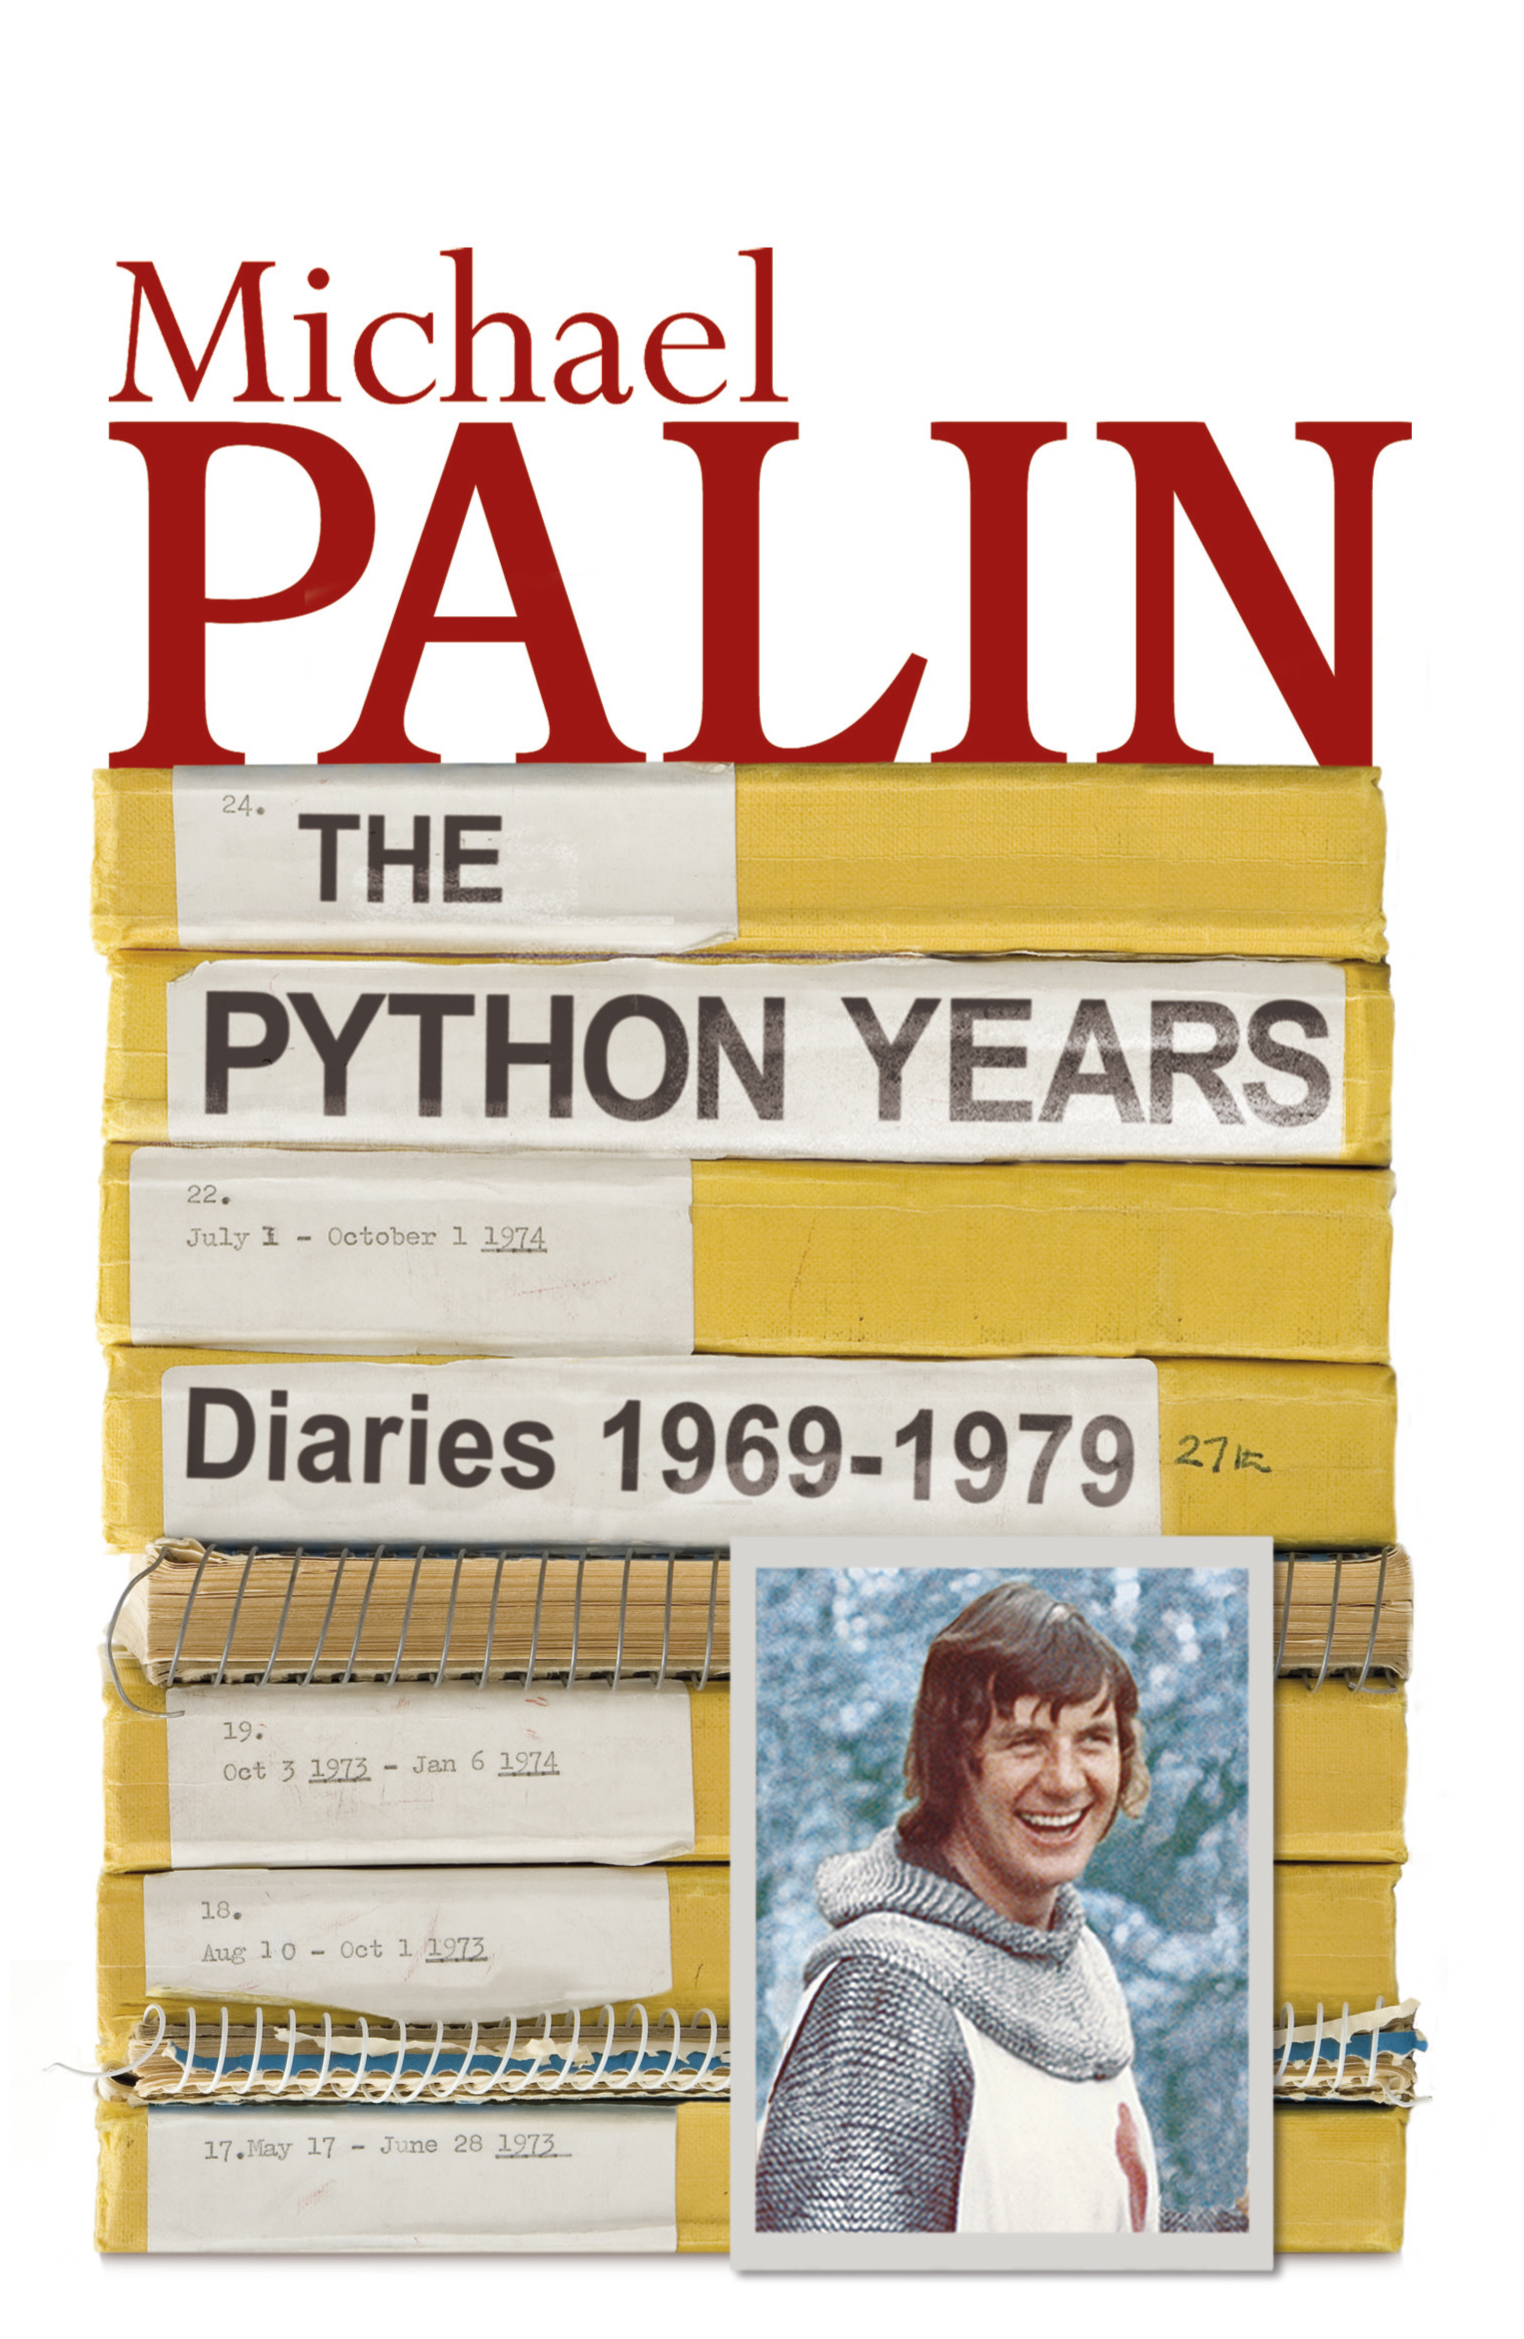 The Python Years Diaries 1969-1979 Volume One